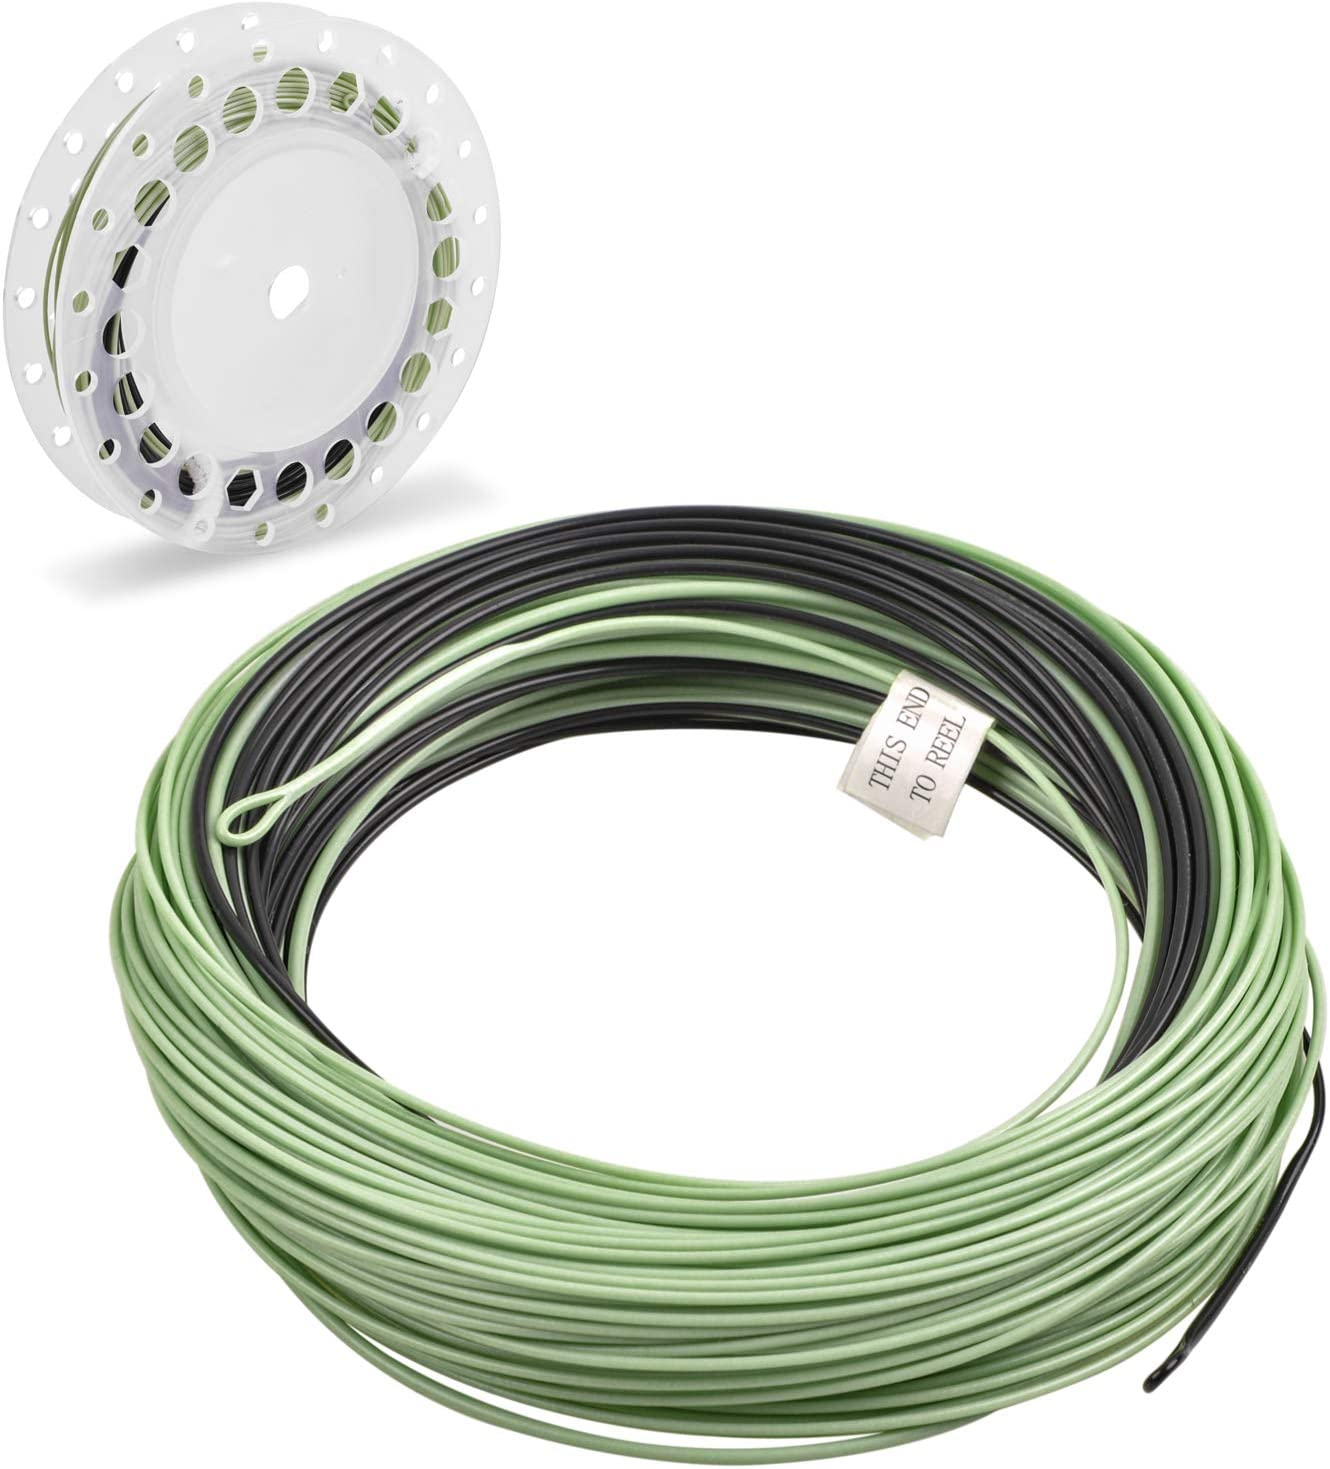 JSHANMEI Sink Tip Fly Fishing Line 100FT Double Color Weight Forward Floating Fly Line with 2 Welded Loops Fly Fishing Line